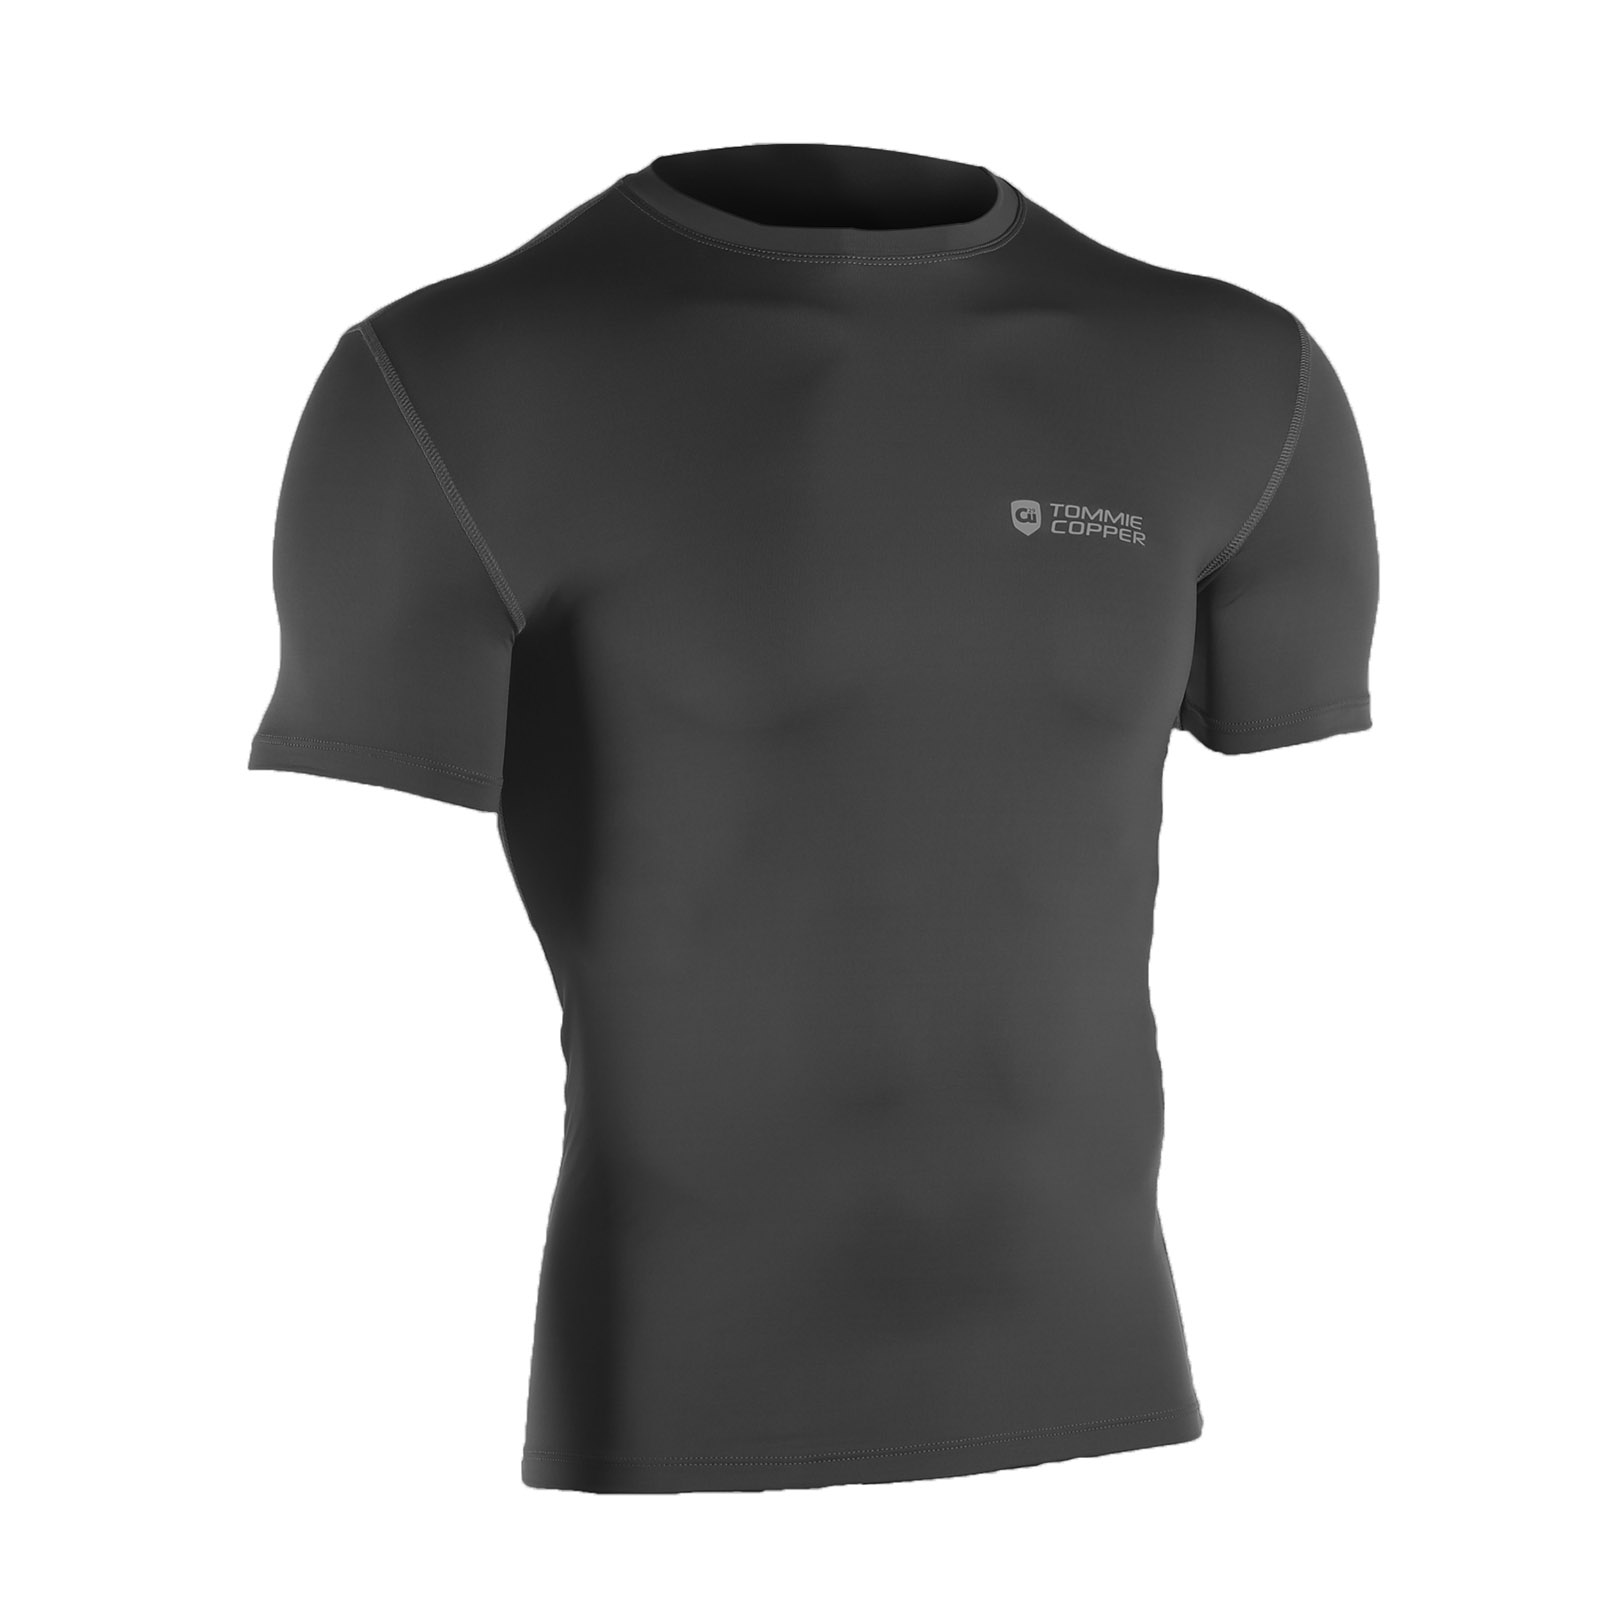 36d994401 Tommie Copper Men's Recovery Compression Short Sleeve Crew Neck Shirt